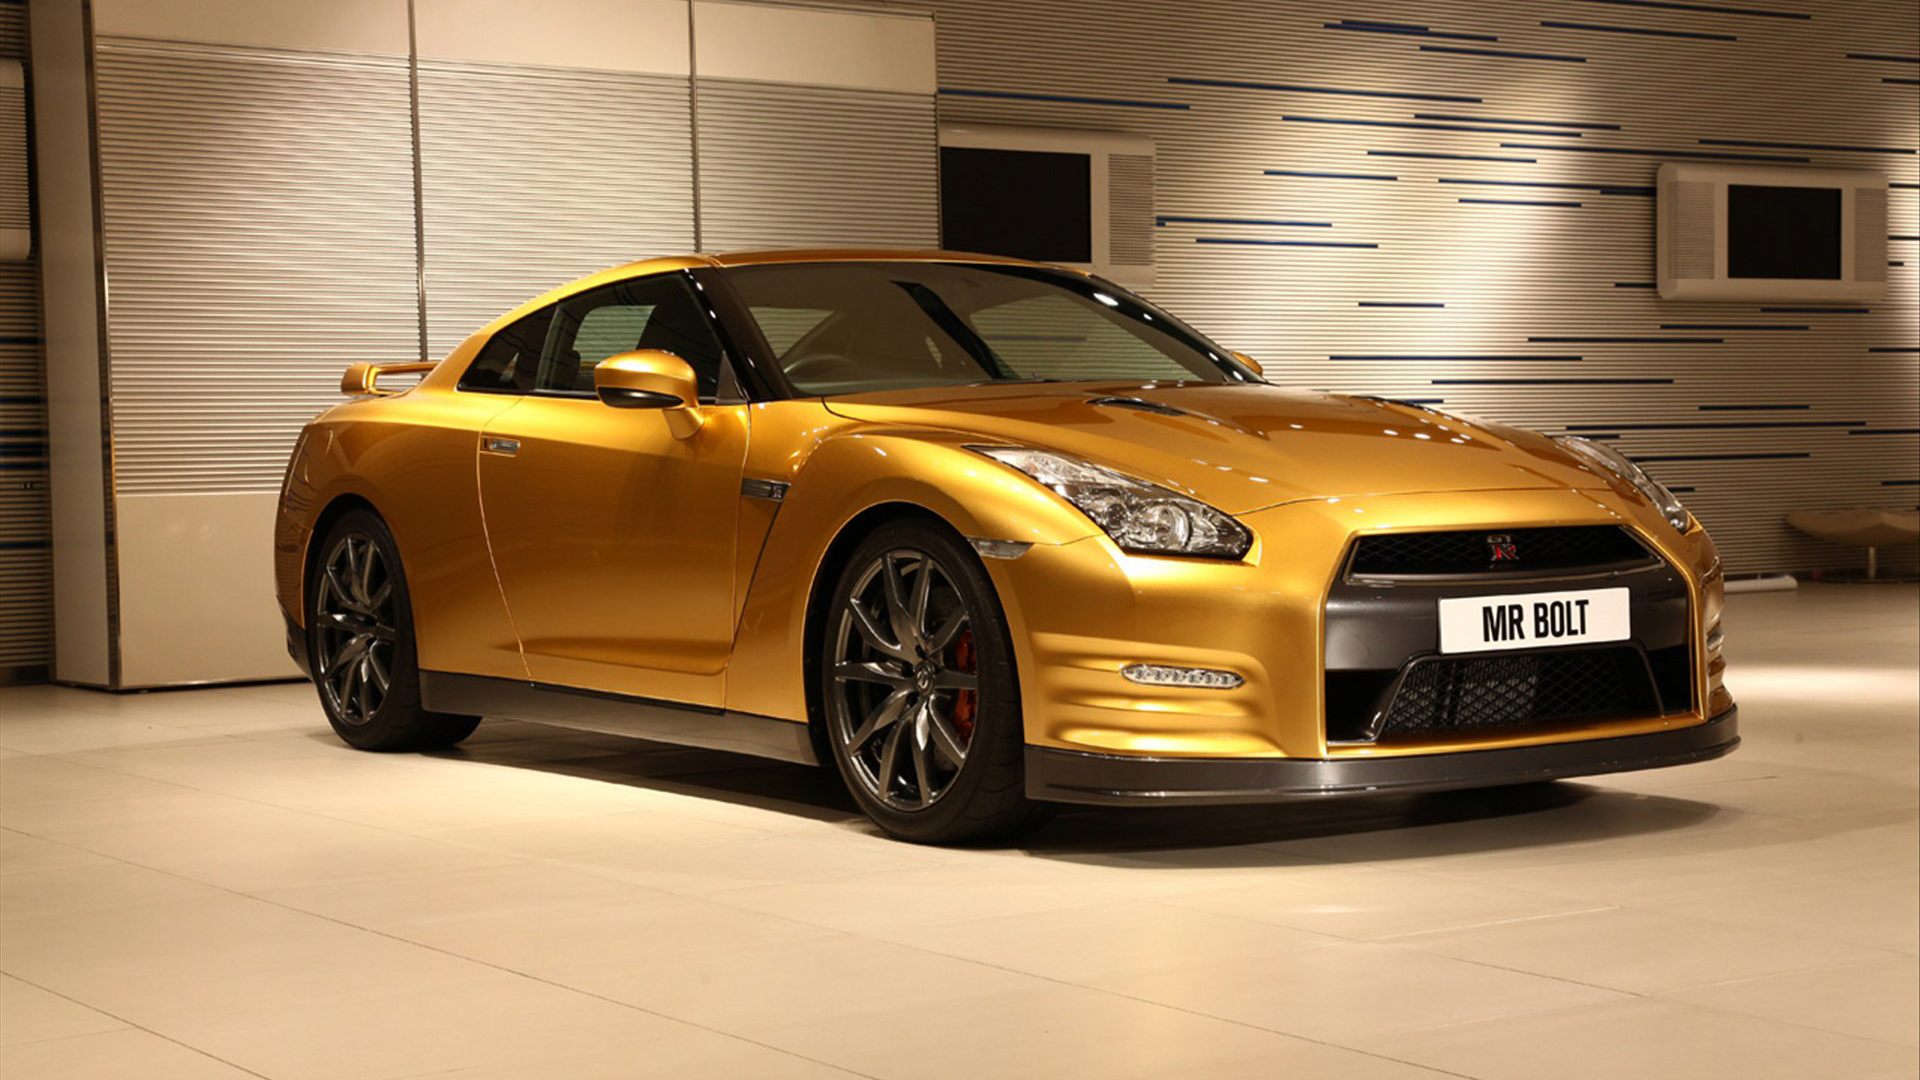 Tags: Gold Nissan